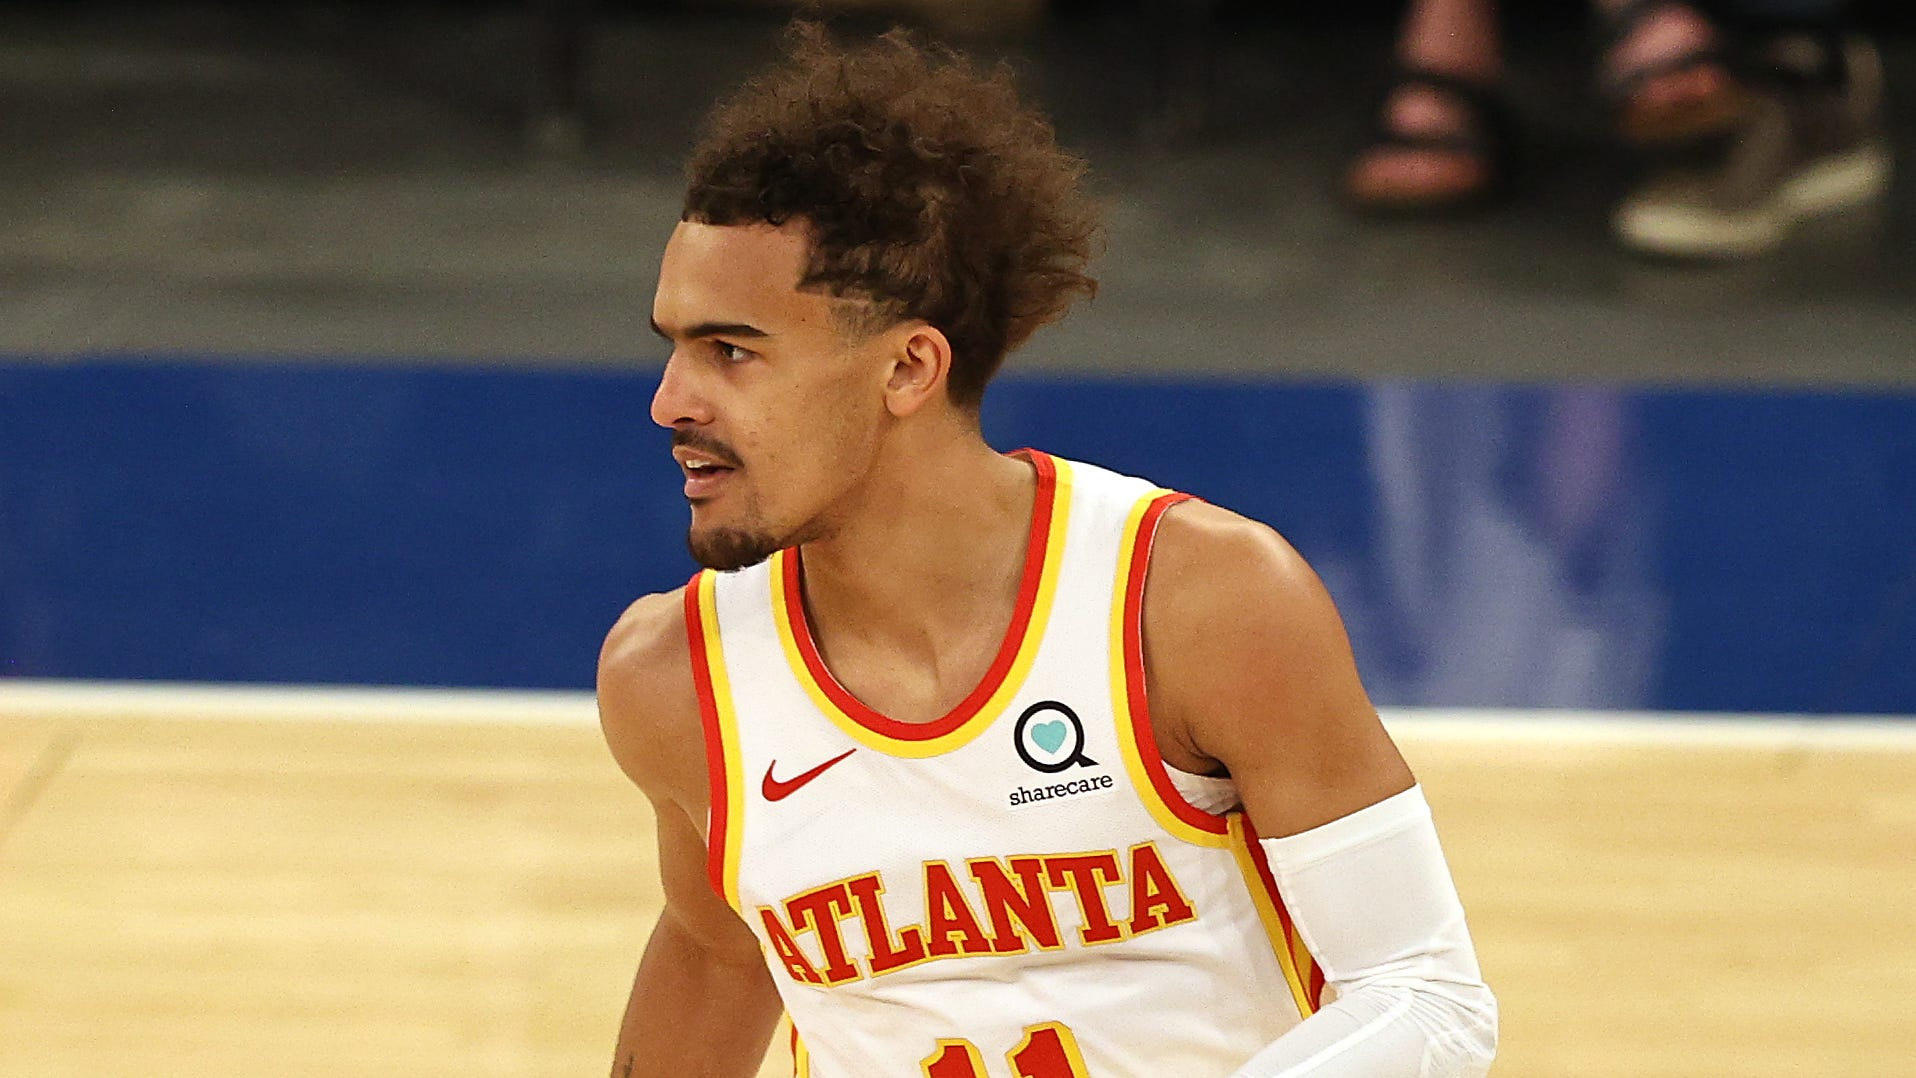 NBA playoffs: Trae Young embracing chance to silence Knicks fans